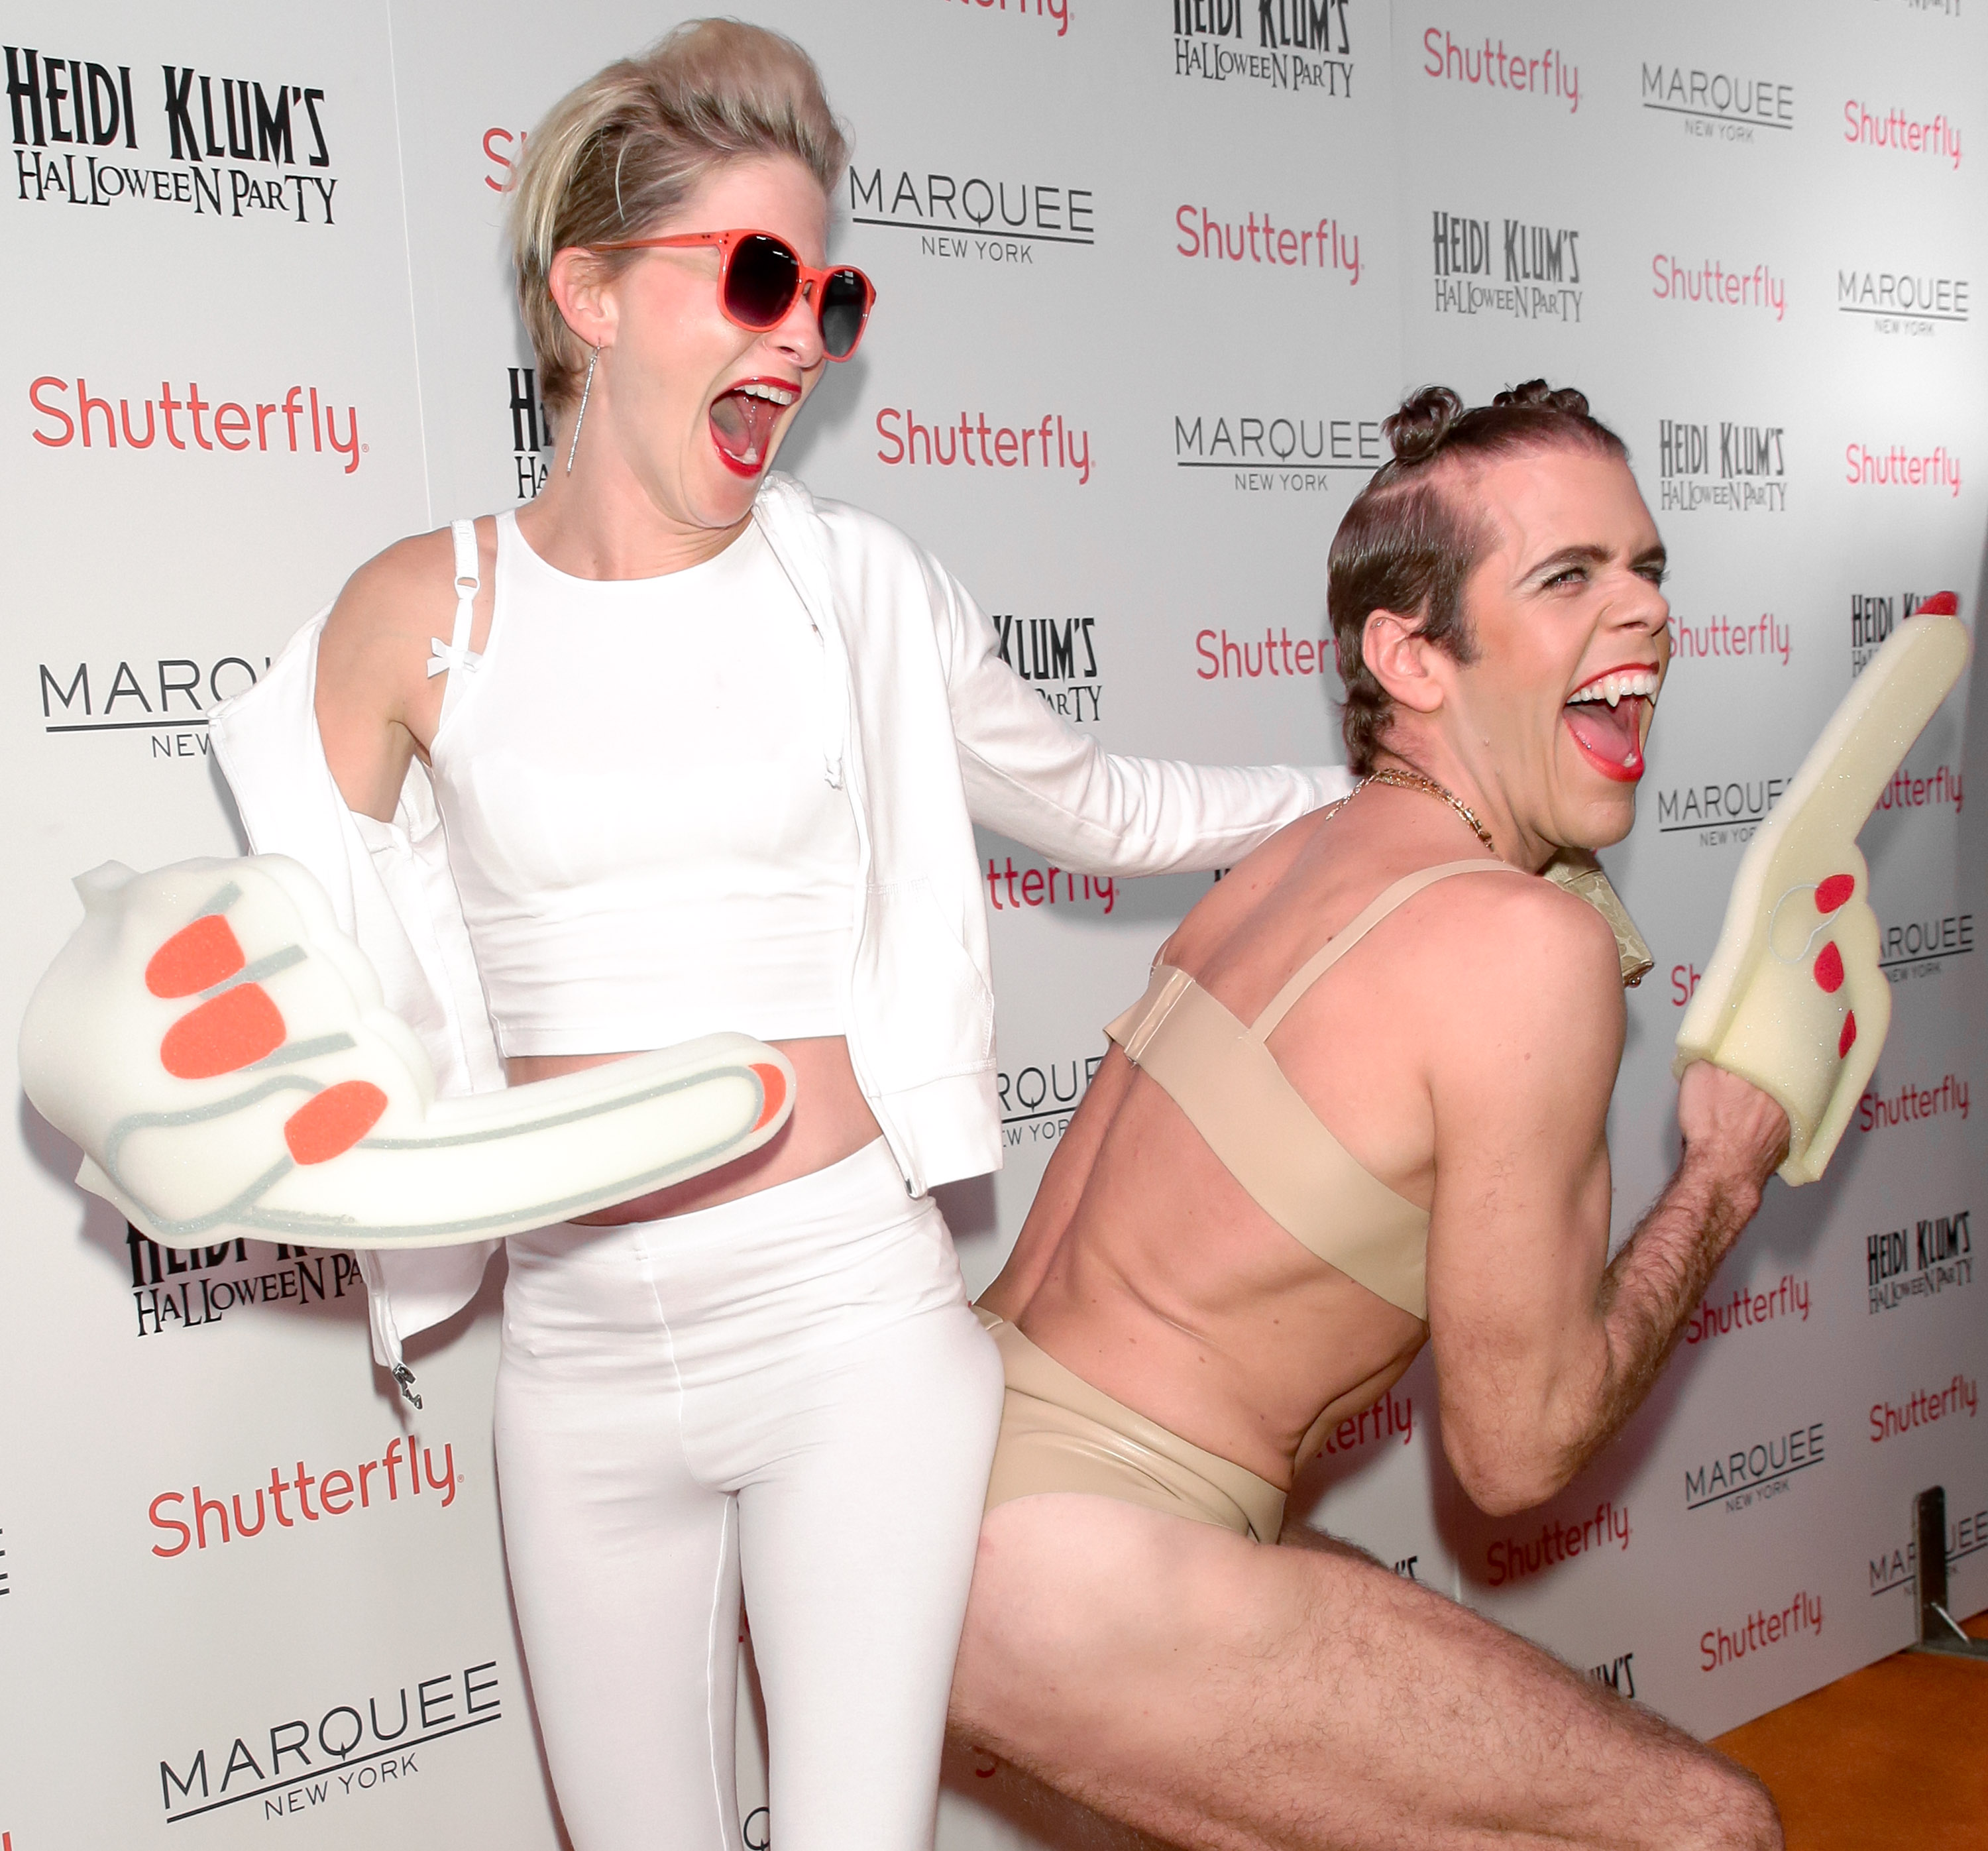 Socialite Julie Macklowe and blogger Perez Hilton) :: Andrew Toth/FilmMagic